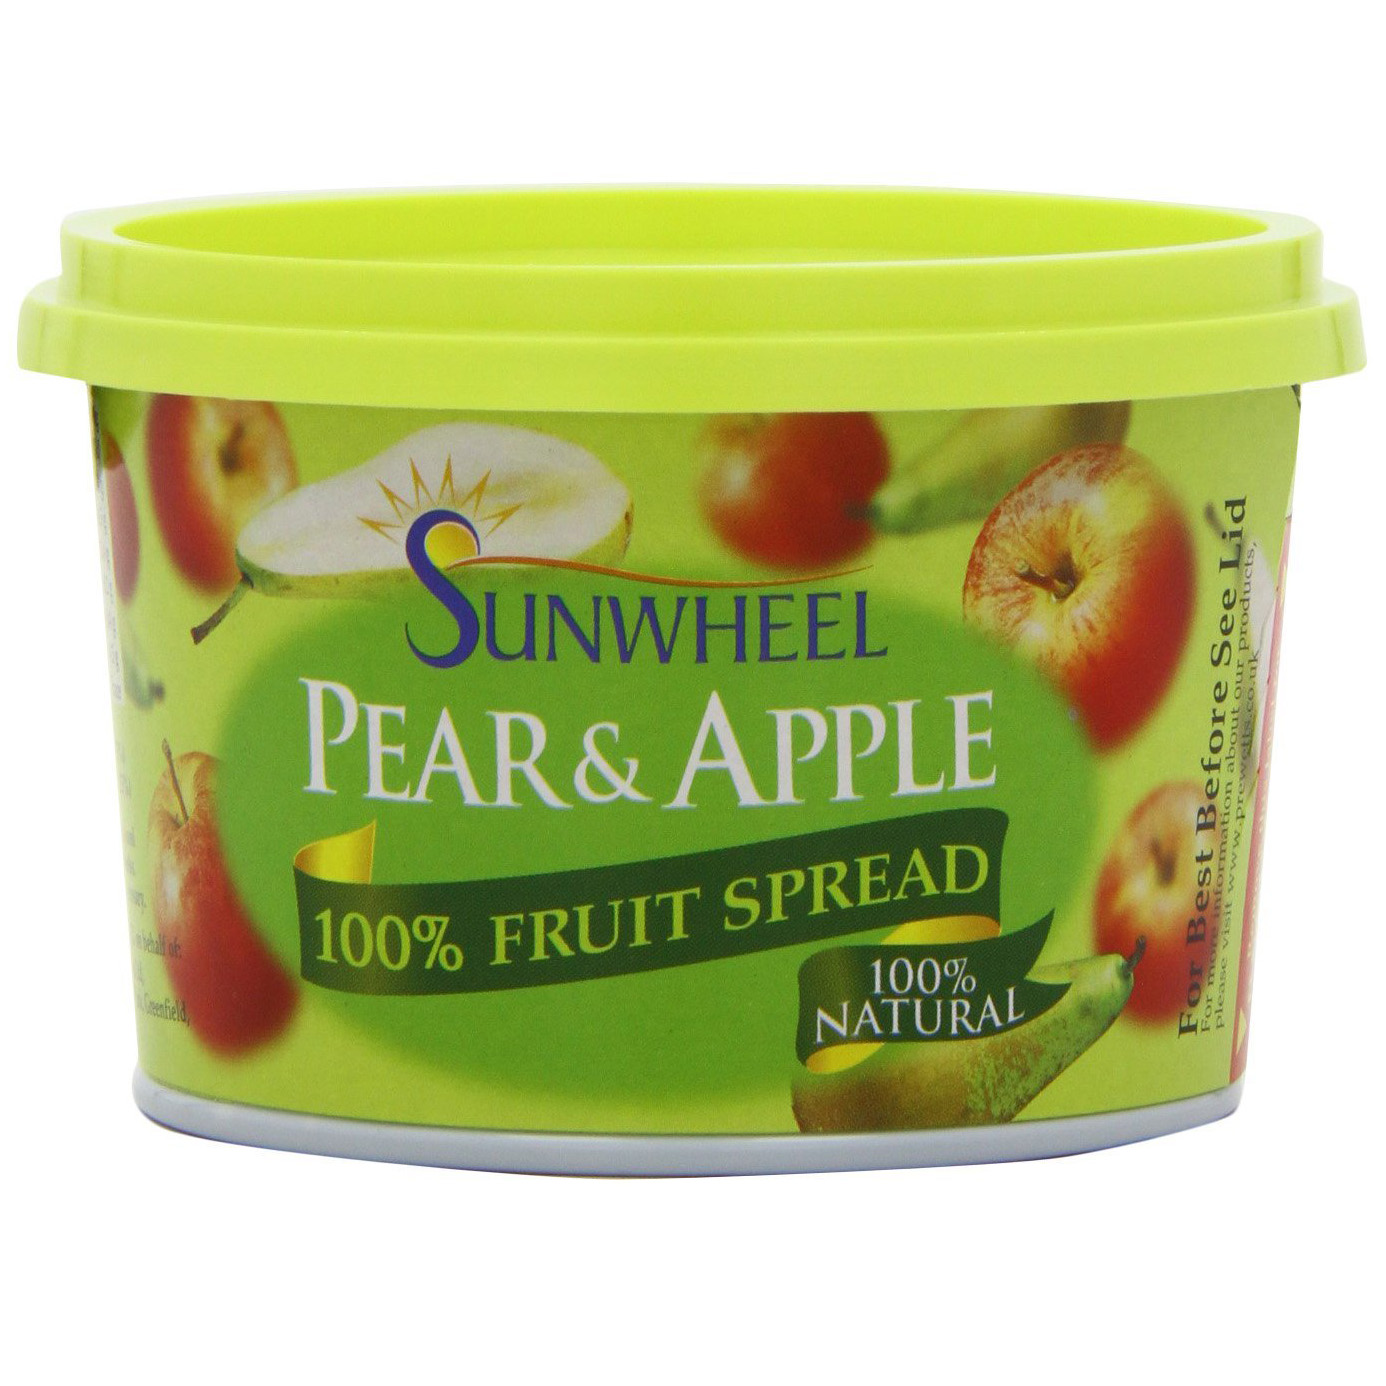 Sunwheel Pear and Apple Spread